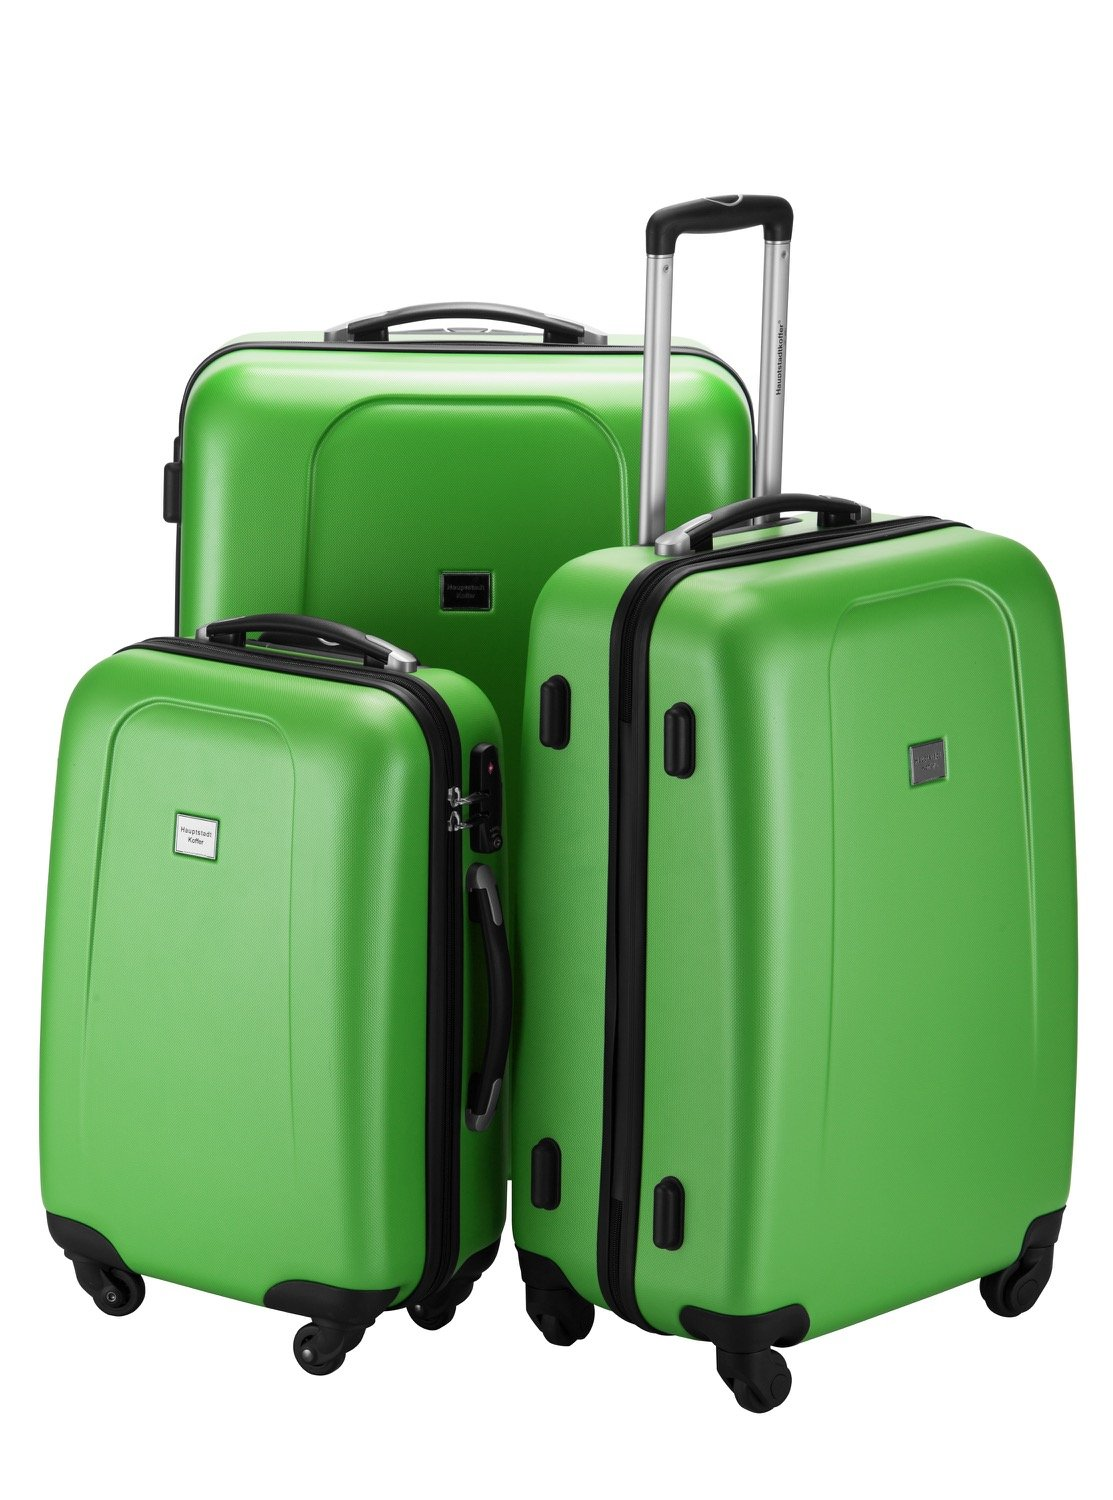 HAUPTSTADTKOFFER Wedding Hard-side Luggage set Glossy Suitcase Hardside Spinner Trolley Expandable (20¡°, 24¡° & 28¡°) TSA Applegreen